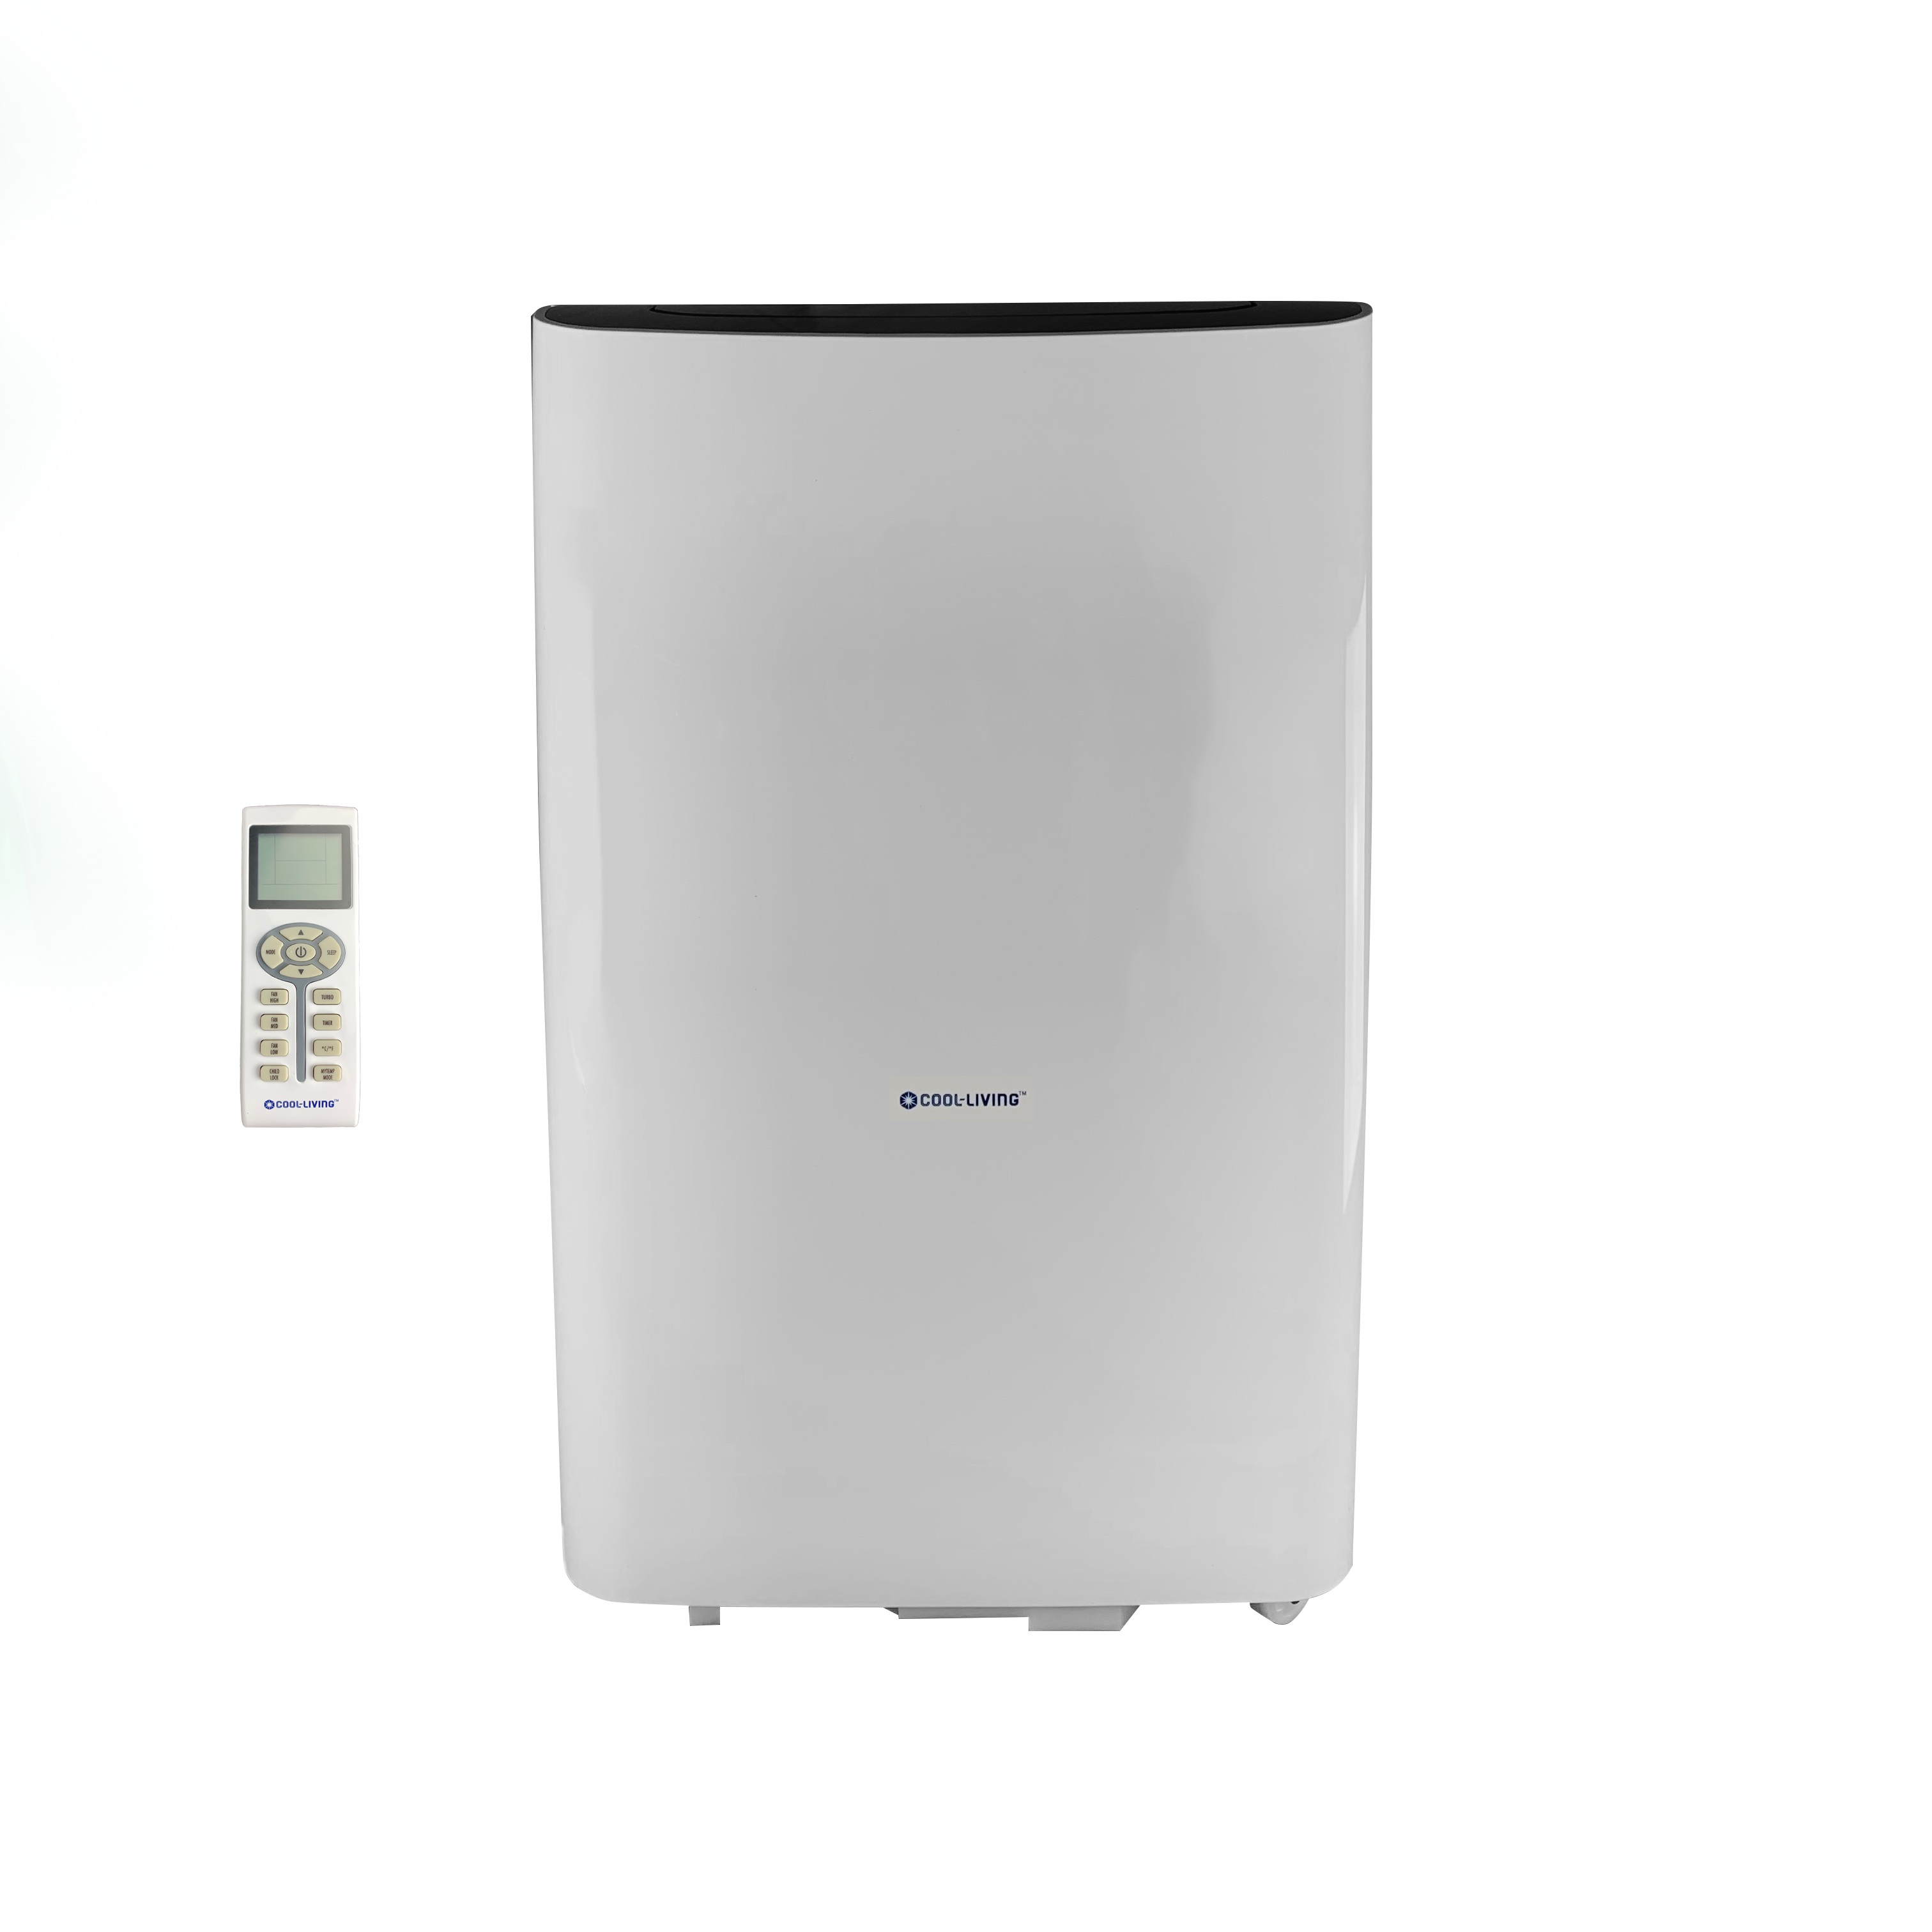 Cool-Living 10,000 BTU Portable Air Conditioner with Dehumidifier, Remote, Window Kit